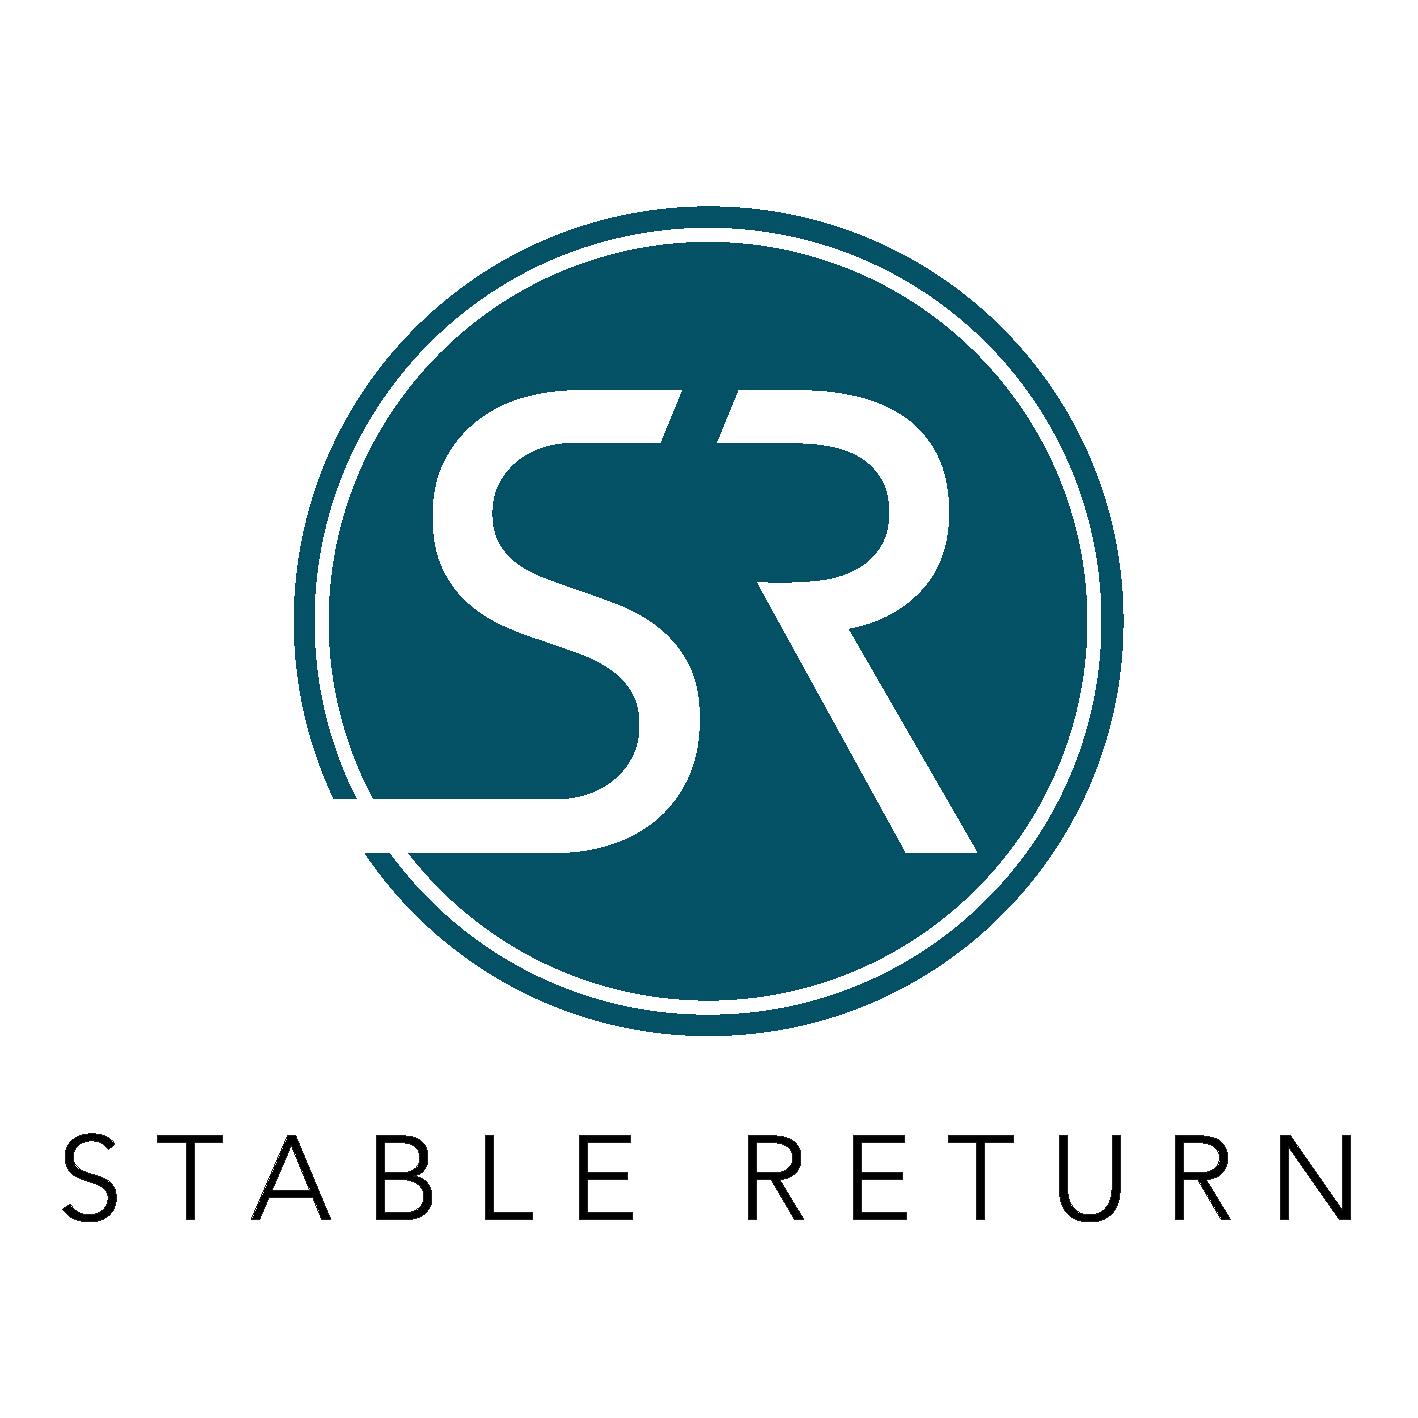 STABLE RETURN